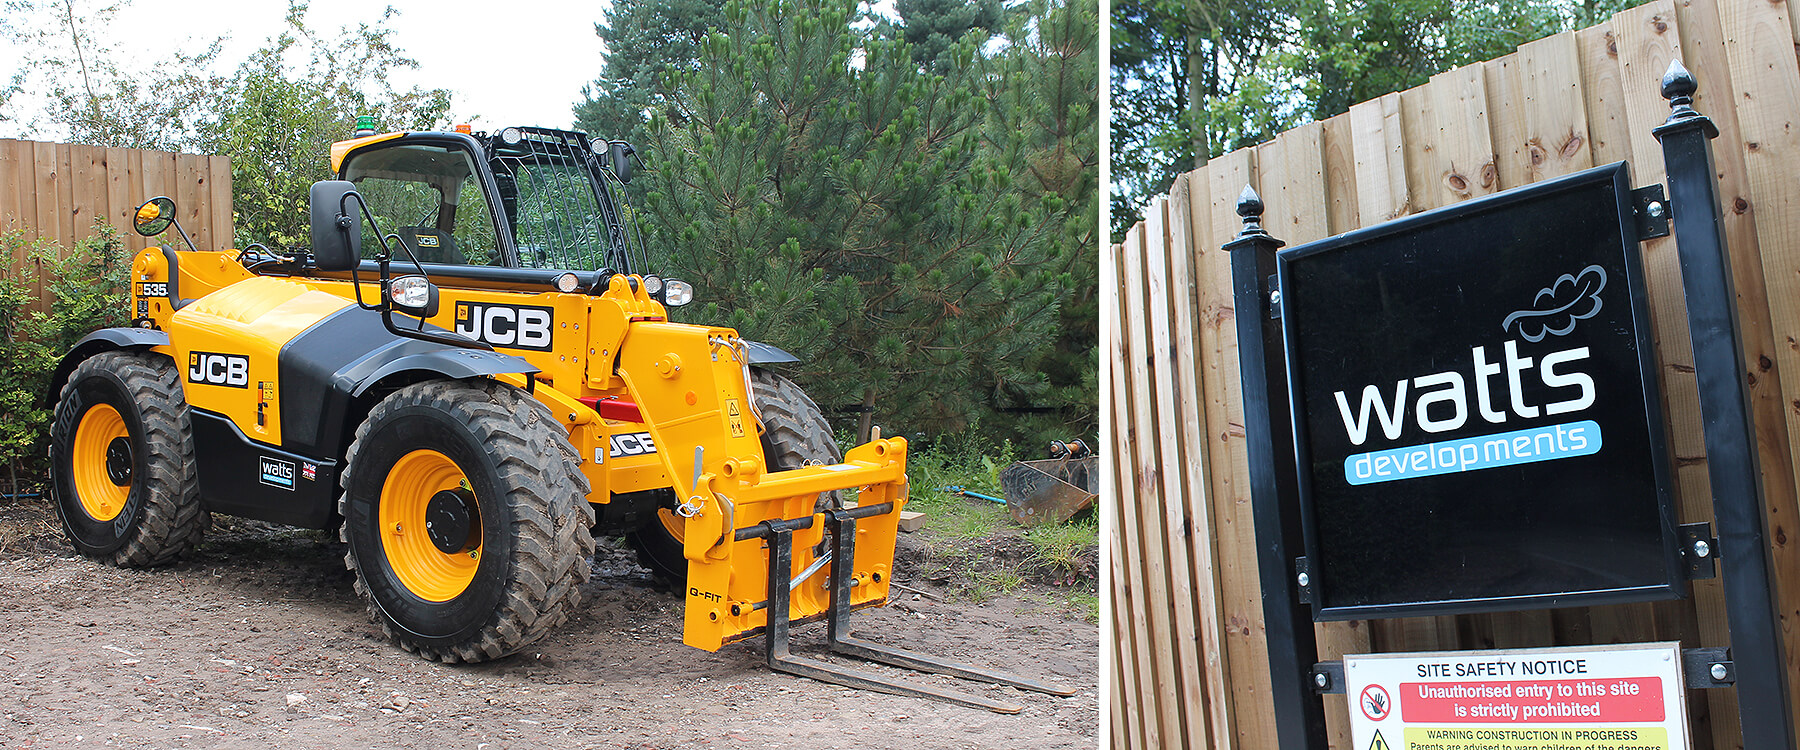 JCB 535 fork lift and site safety notice